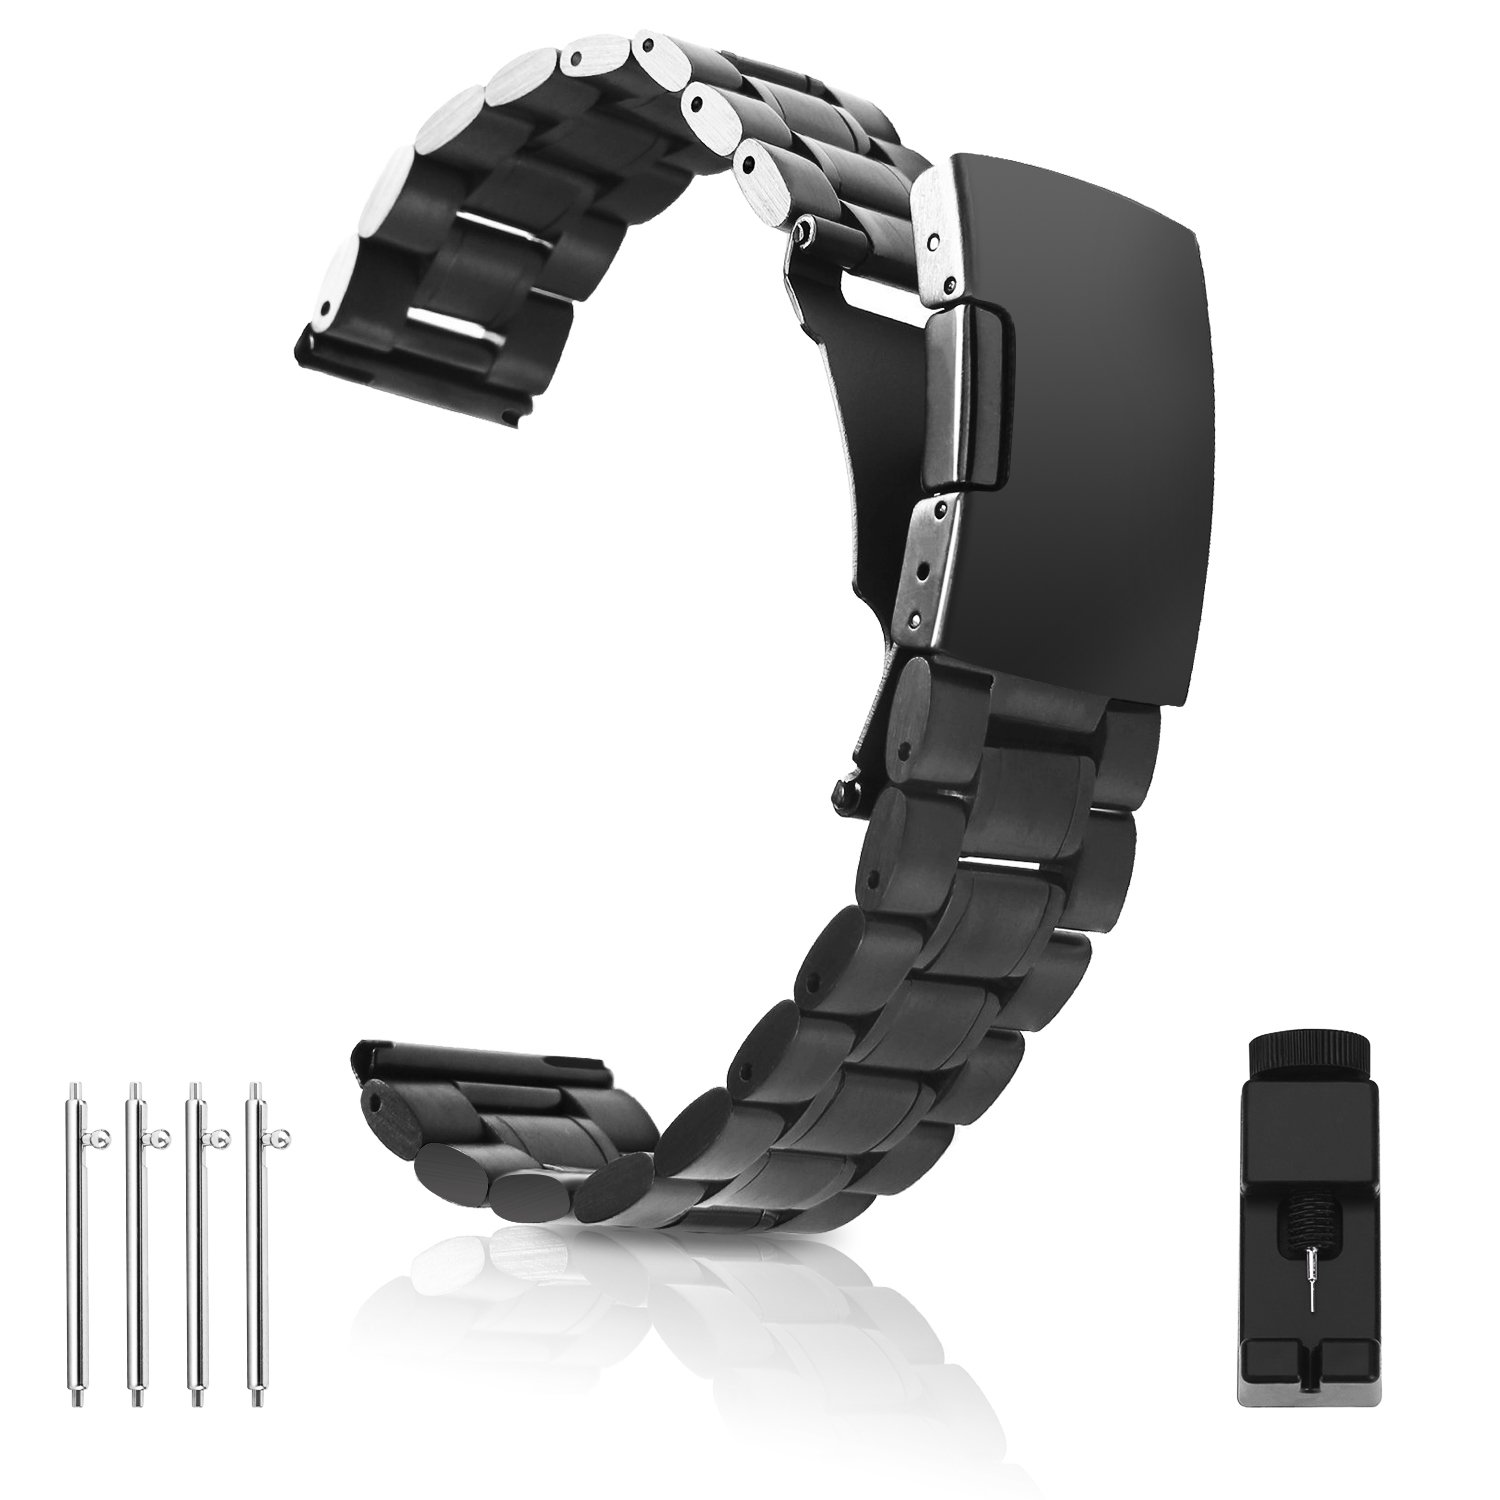 Vetoo 304 Stainless Steel 22mm Watch Bands for Moto 360 2nd Gen 46mm,Pebble Time,Time Steel,Classic,ASUS ZenWatch WI500Q,WI501Q,Samsung Gear 2 R380,Neo R381,Live R382,LG G Watch W100,Urbane,R(Black)